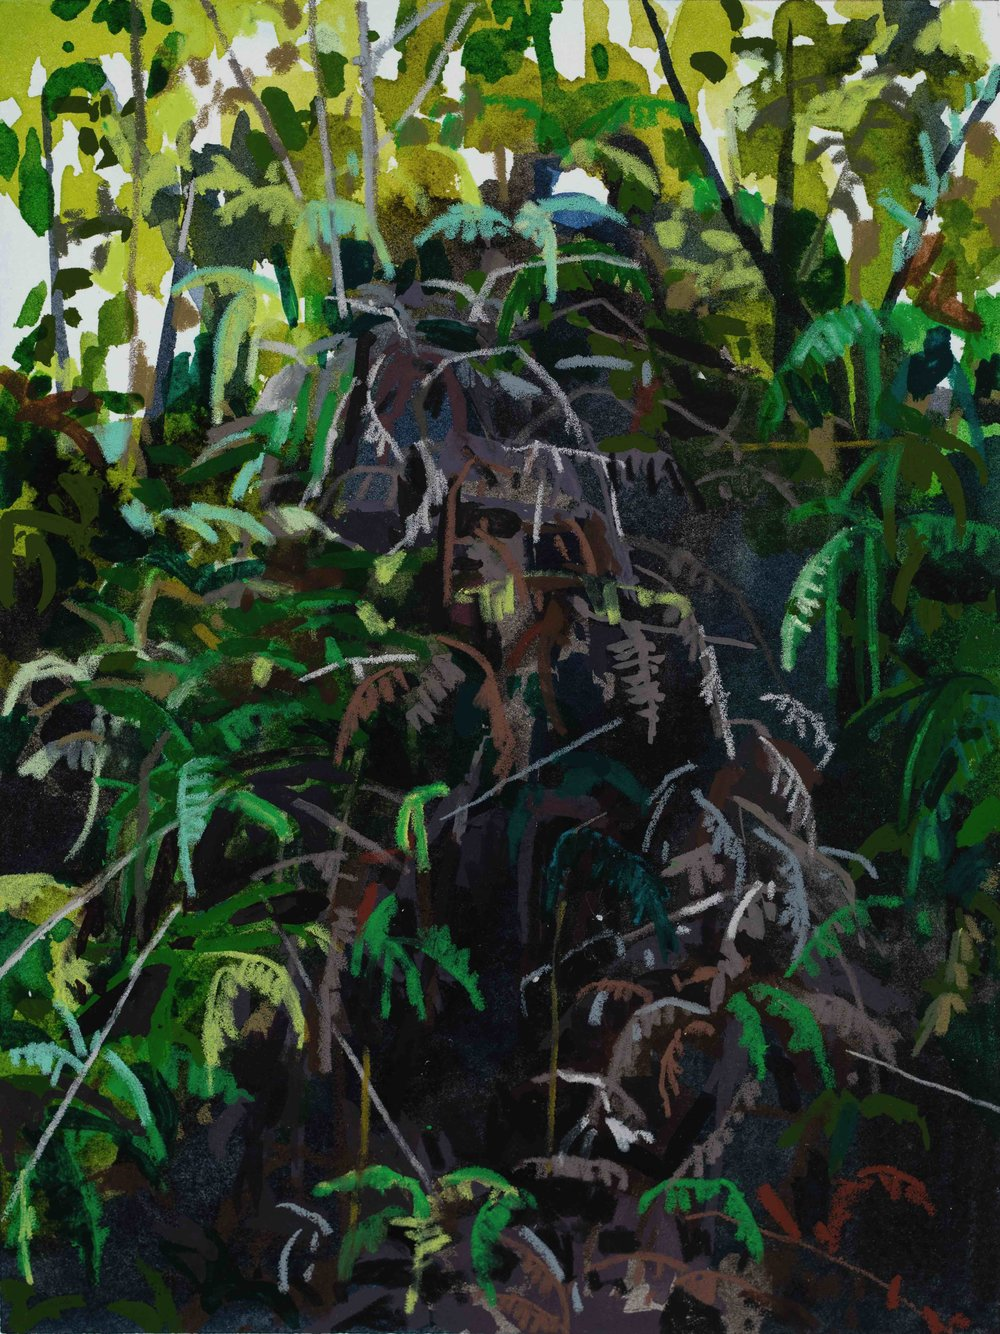 Ferns and Vines, 2019